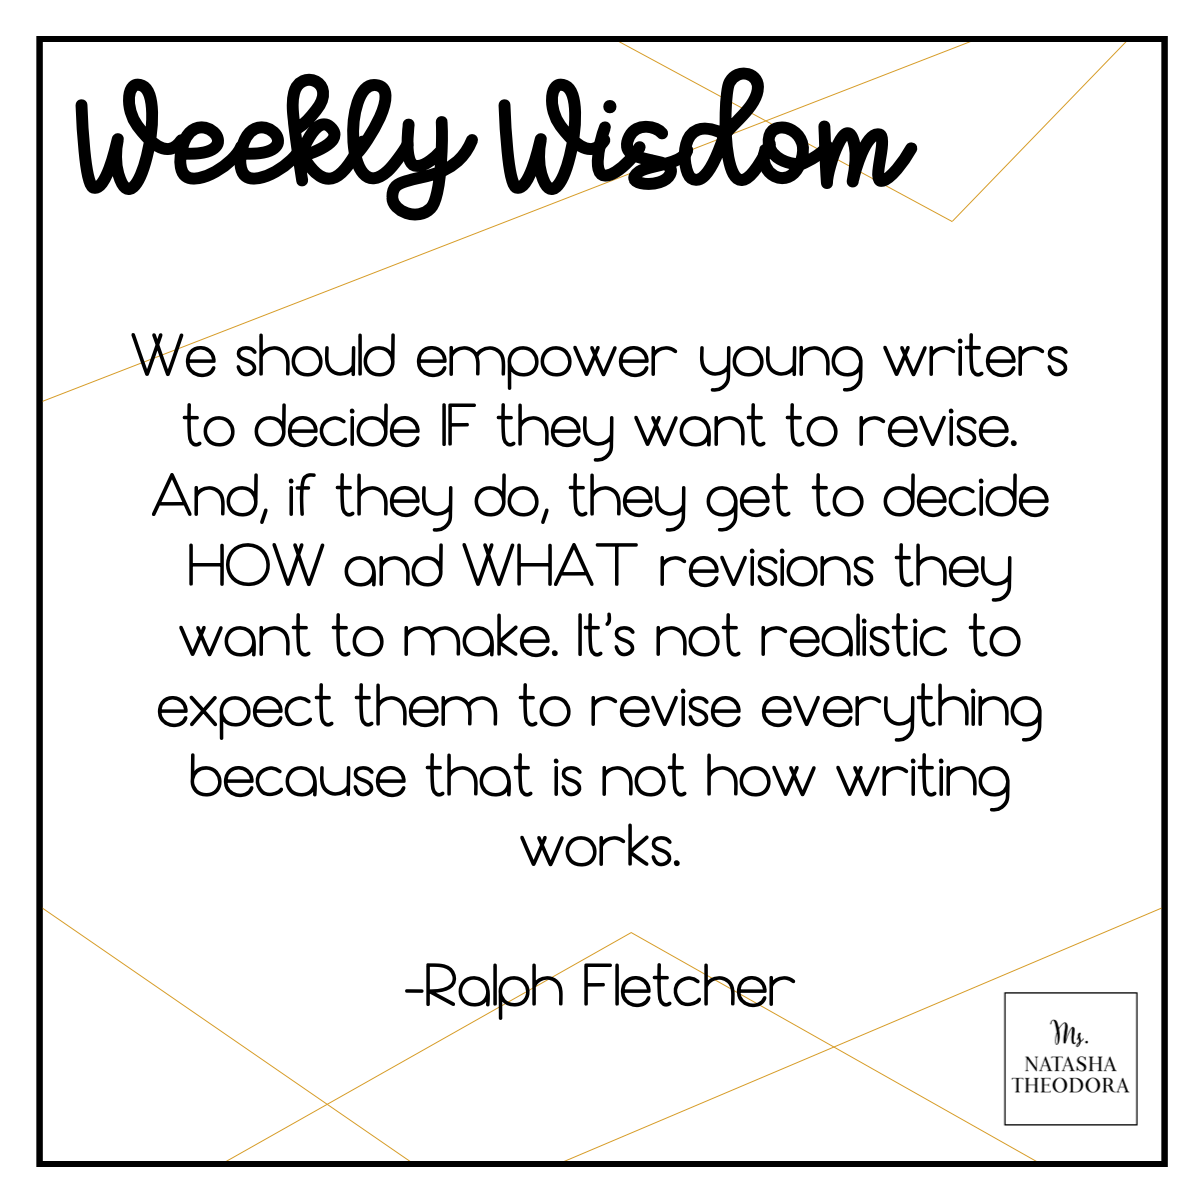 We should empower young writers to decide IF they want to revise. And, if they do, decide HOW and WHAT revisions they want to make. It's not realistic to expect them to revise everything because that is not how writing works. -Ralph Fletcher